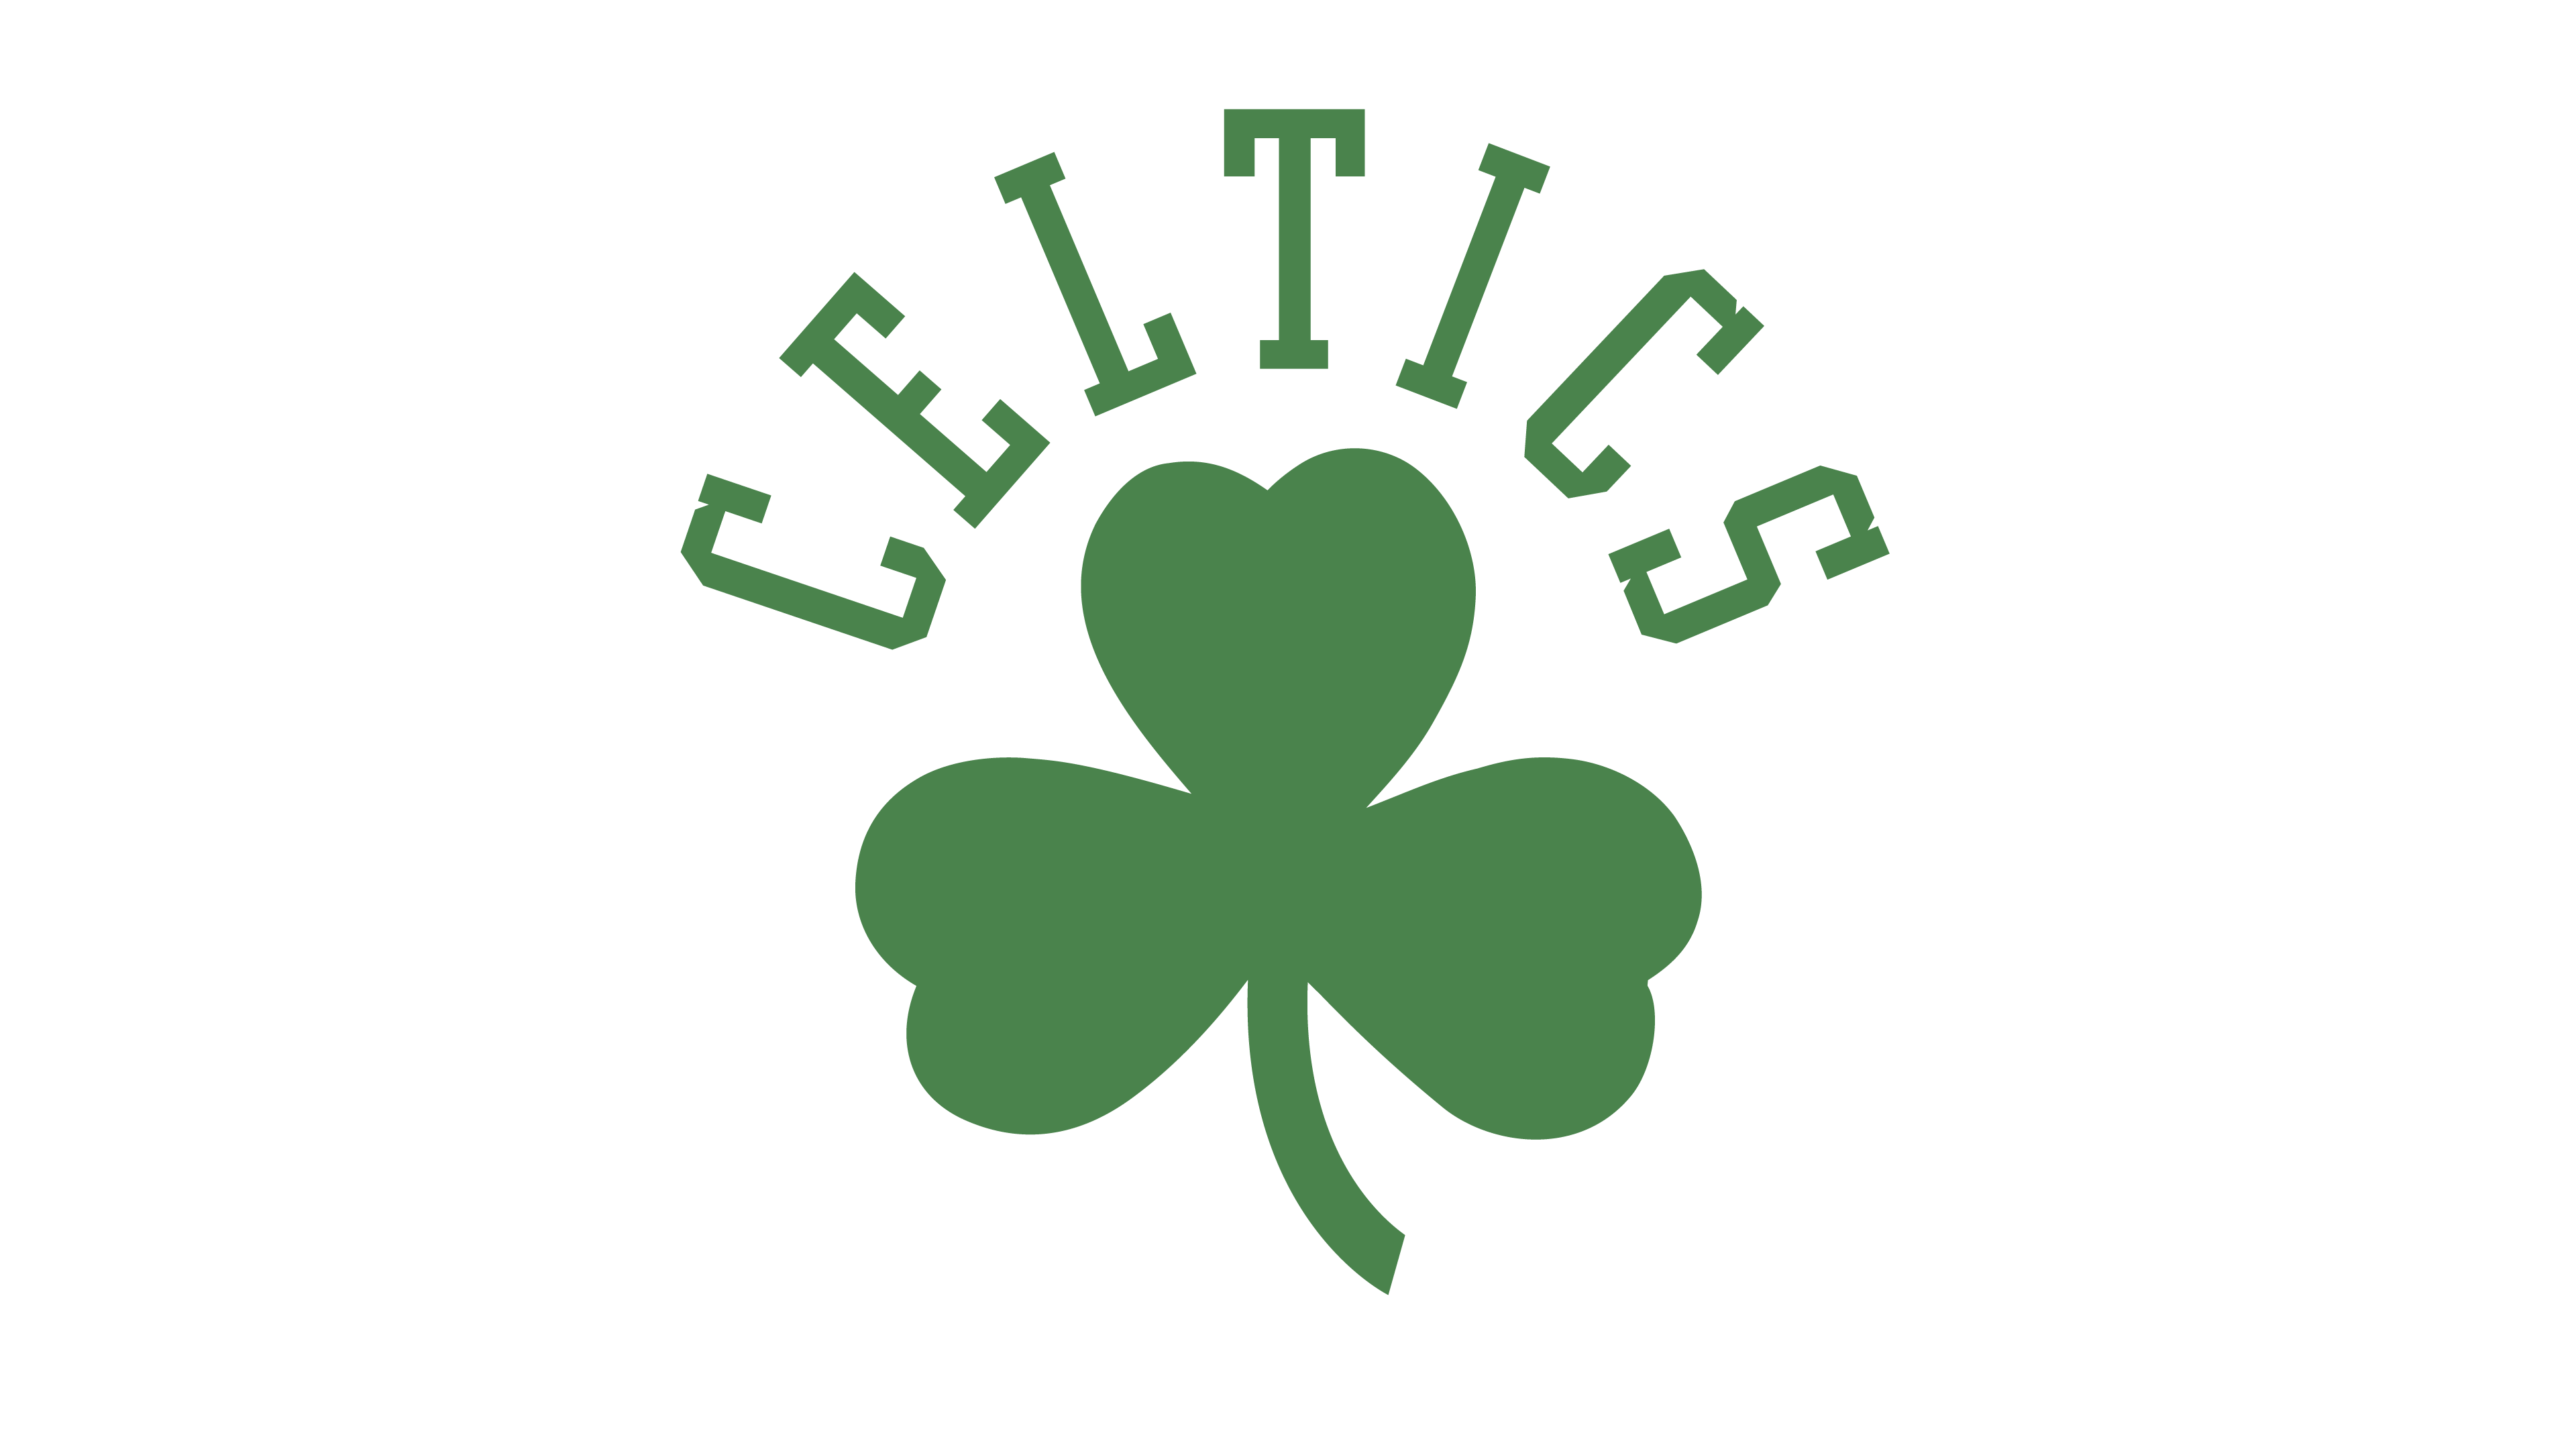 Boston celtics basketball clipart free Boston Celtics Logo - Interesting History of the Team Name and emblem free